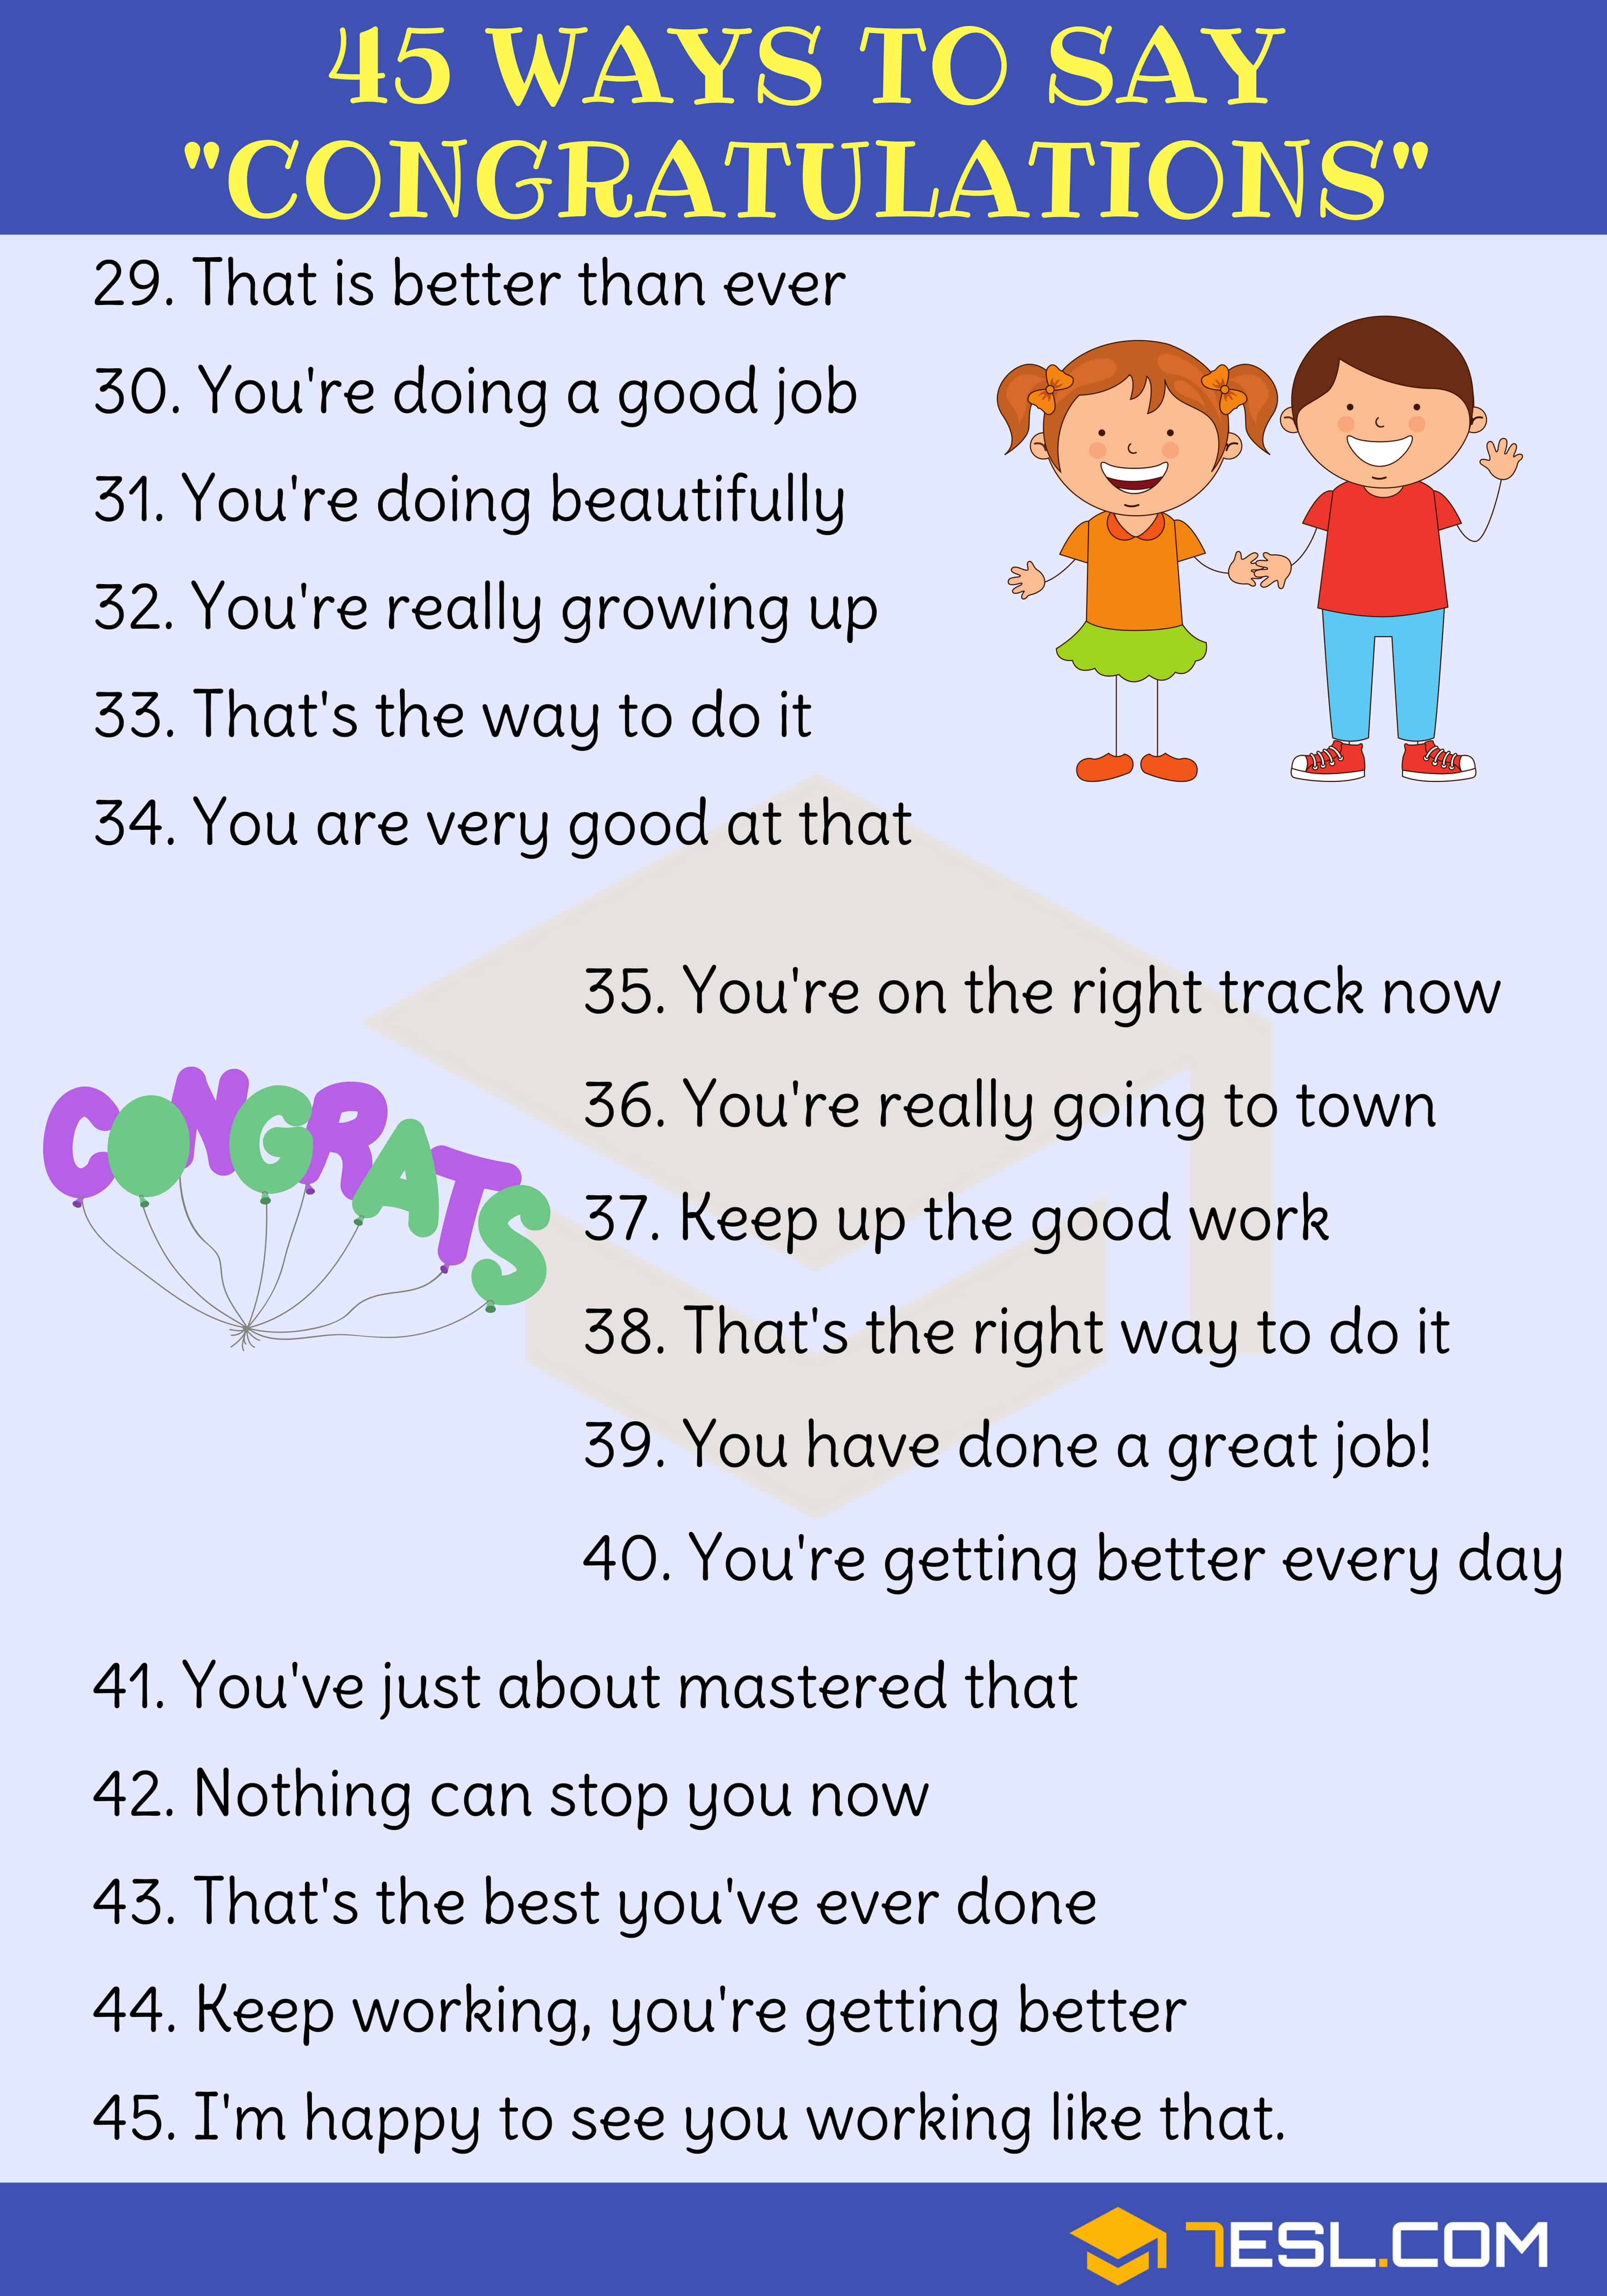 How To Congratulate a Colleague on Their Promotion (With